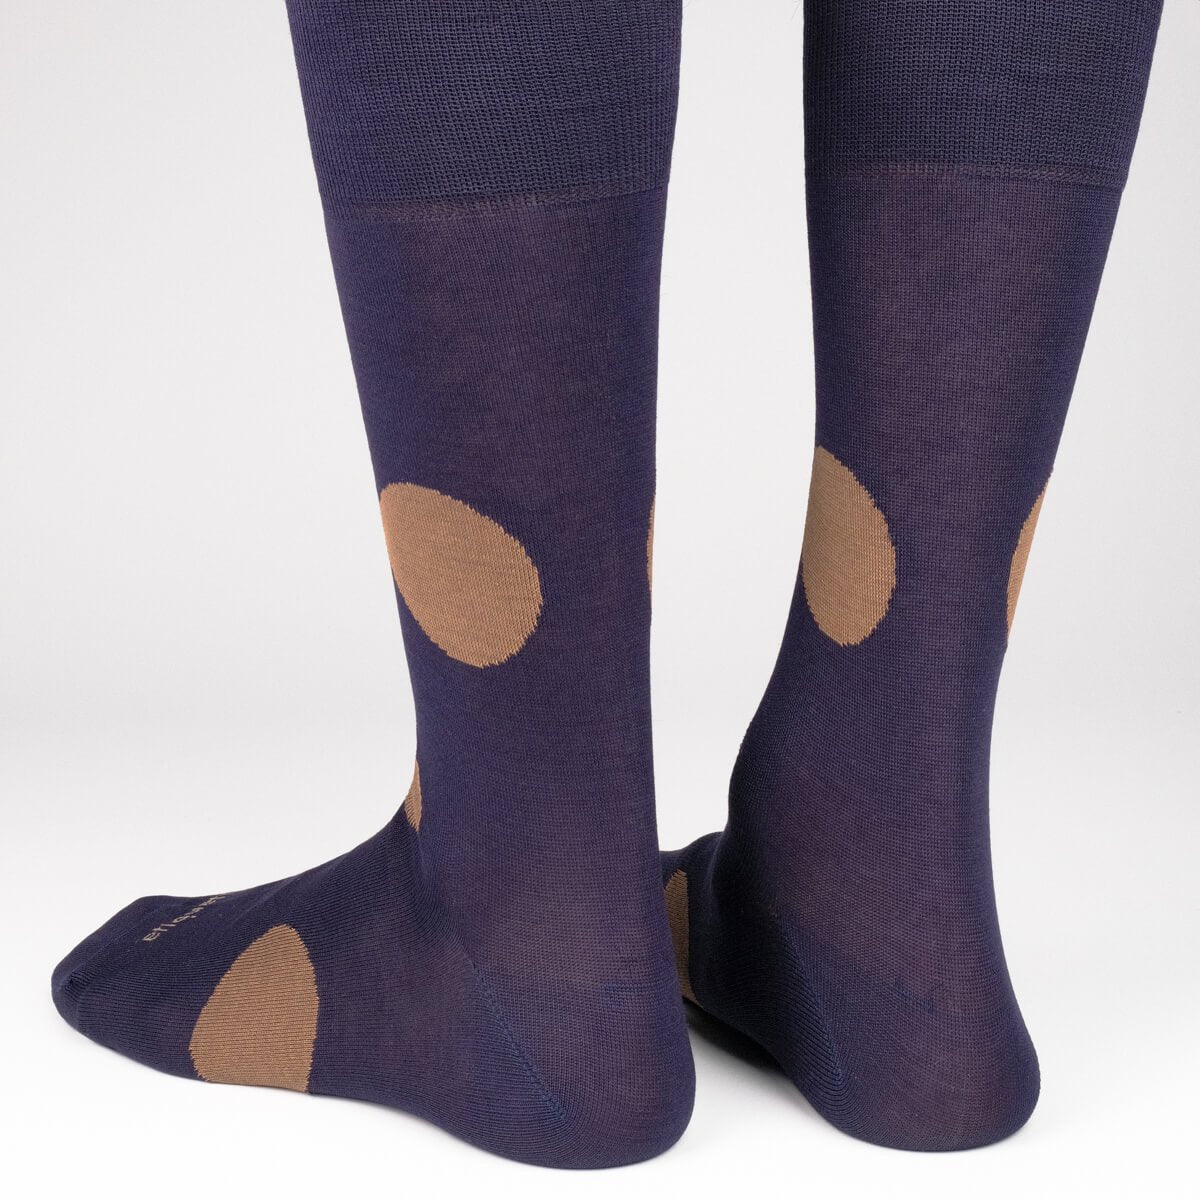 Big Dots - Dark Blue - Mens Socks | Etiquette Clothiers Global Official